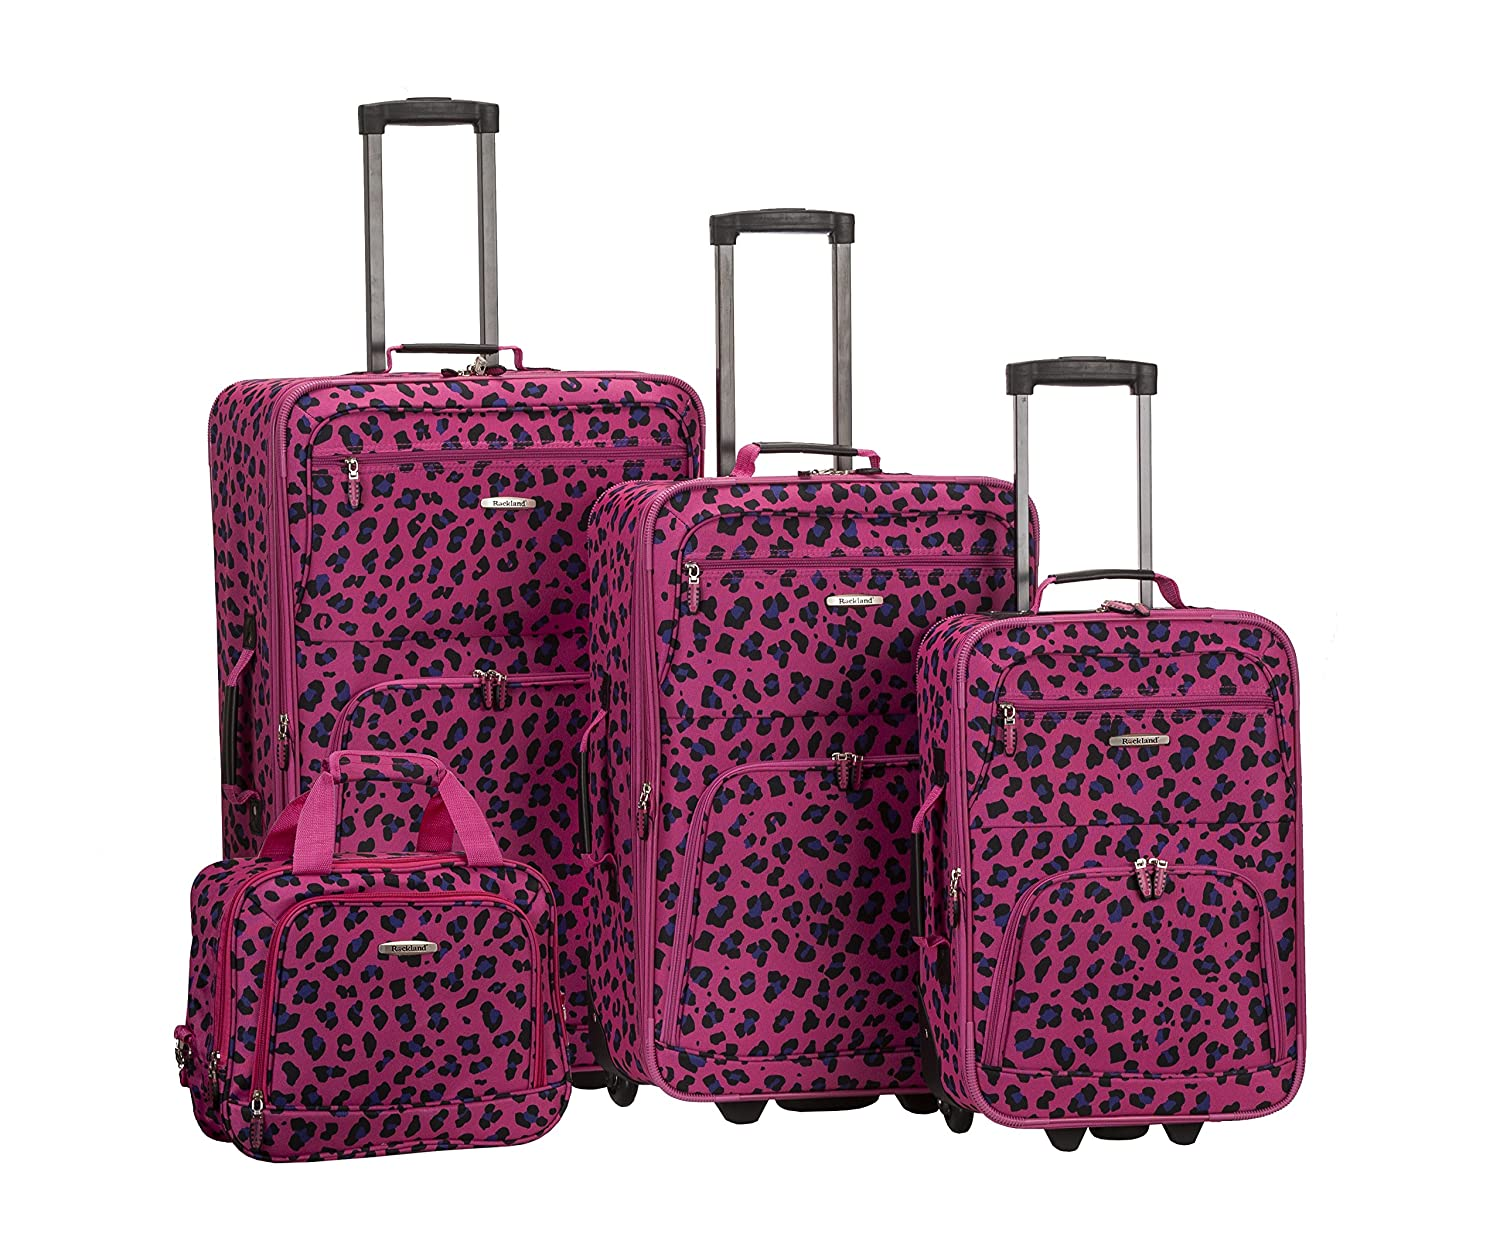 Cheap Luggage Sets Under 100 | Luggage And Suitcases